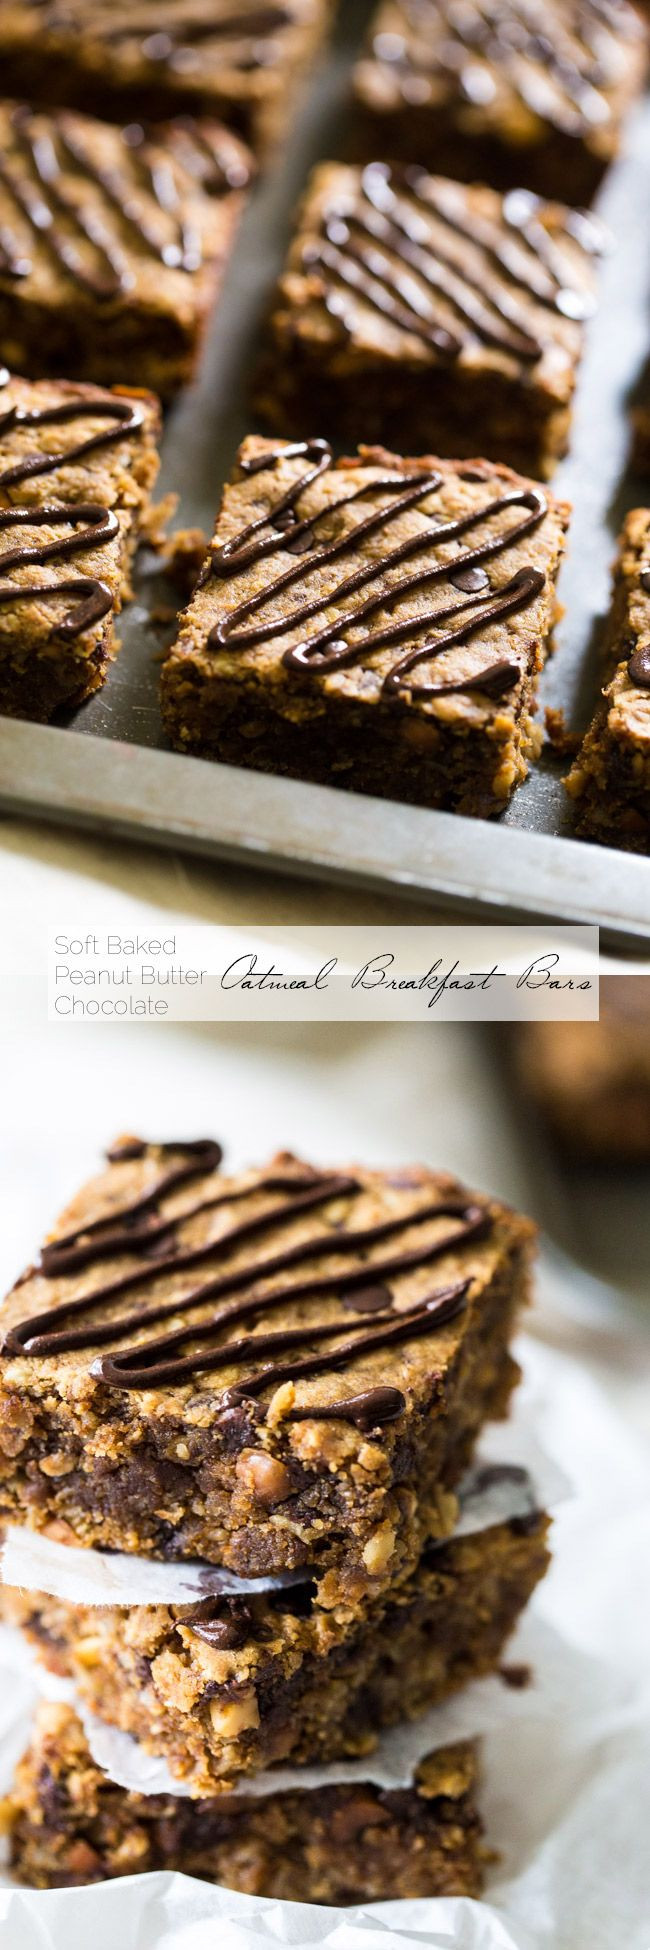 Healthy Store Bought Breakfast  Healthy Recipes Chocolate Peanut Butter Oatmeal